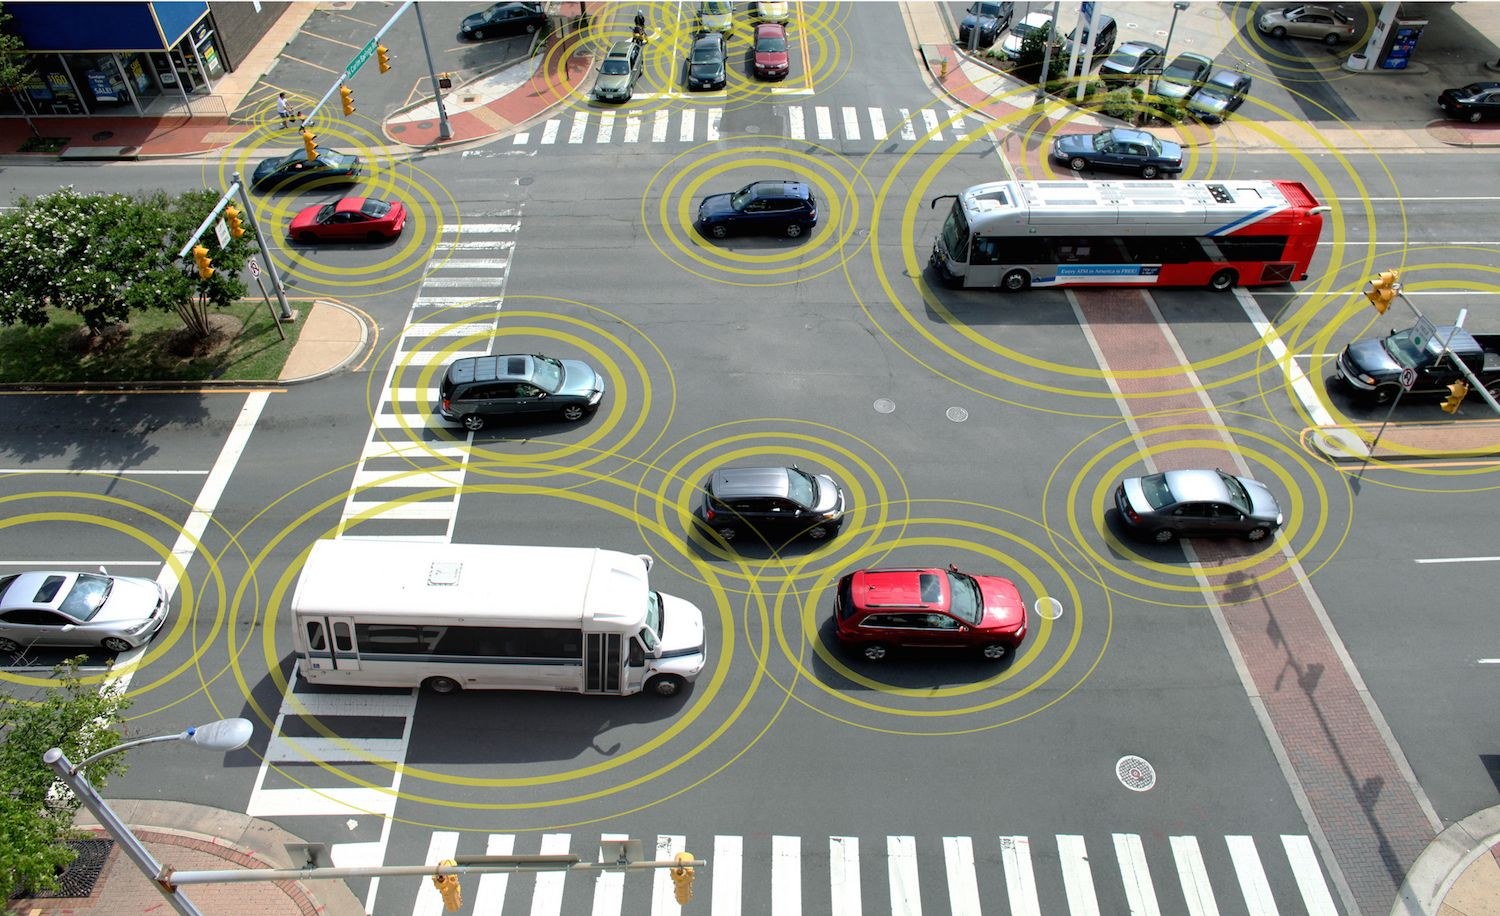 The connected car network will change how we view transportation